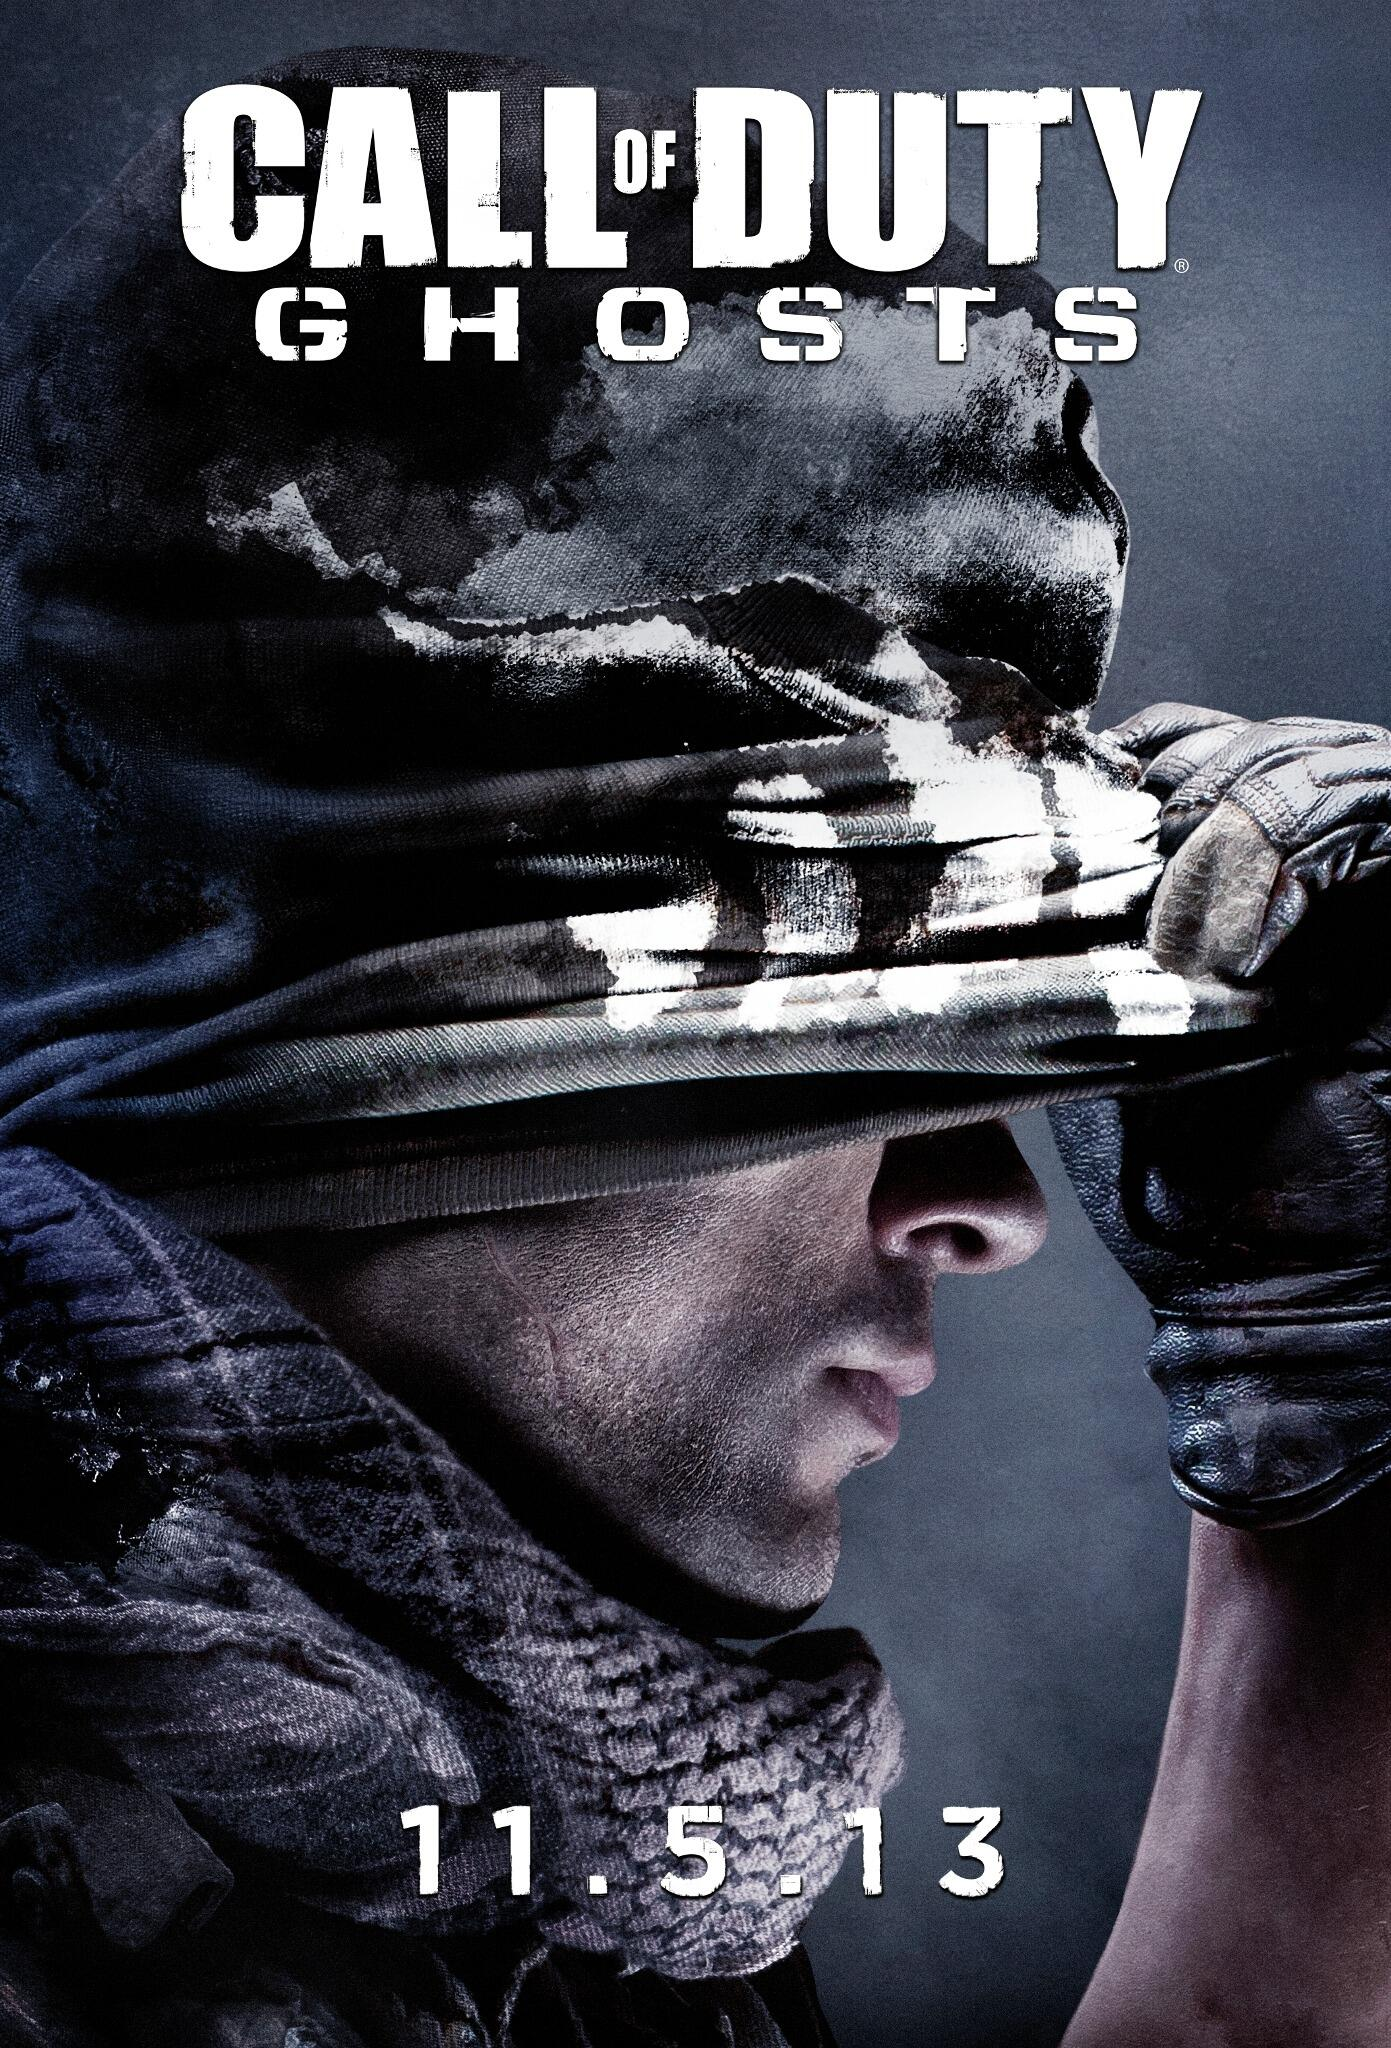 RT @CallofDuty: What's your favorite part of the Masked Warriors teaser trailer for #CODGhosts? http://t.co/5fuNKXLDNy